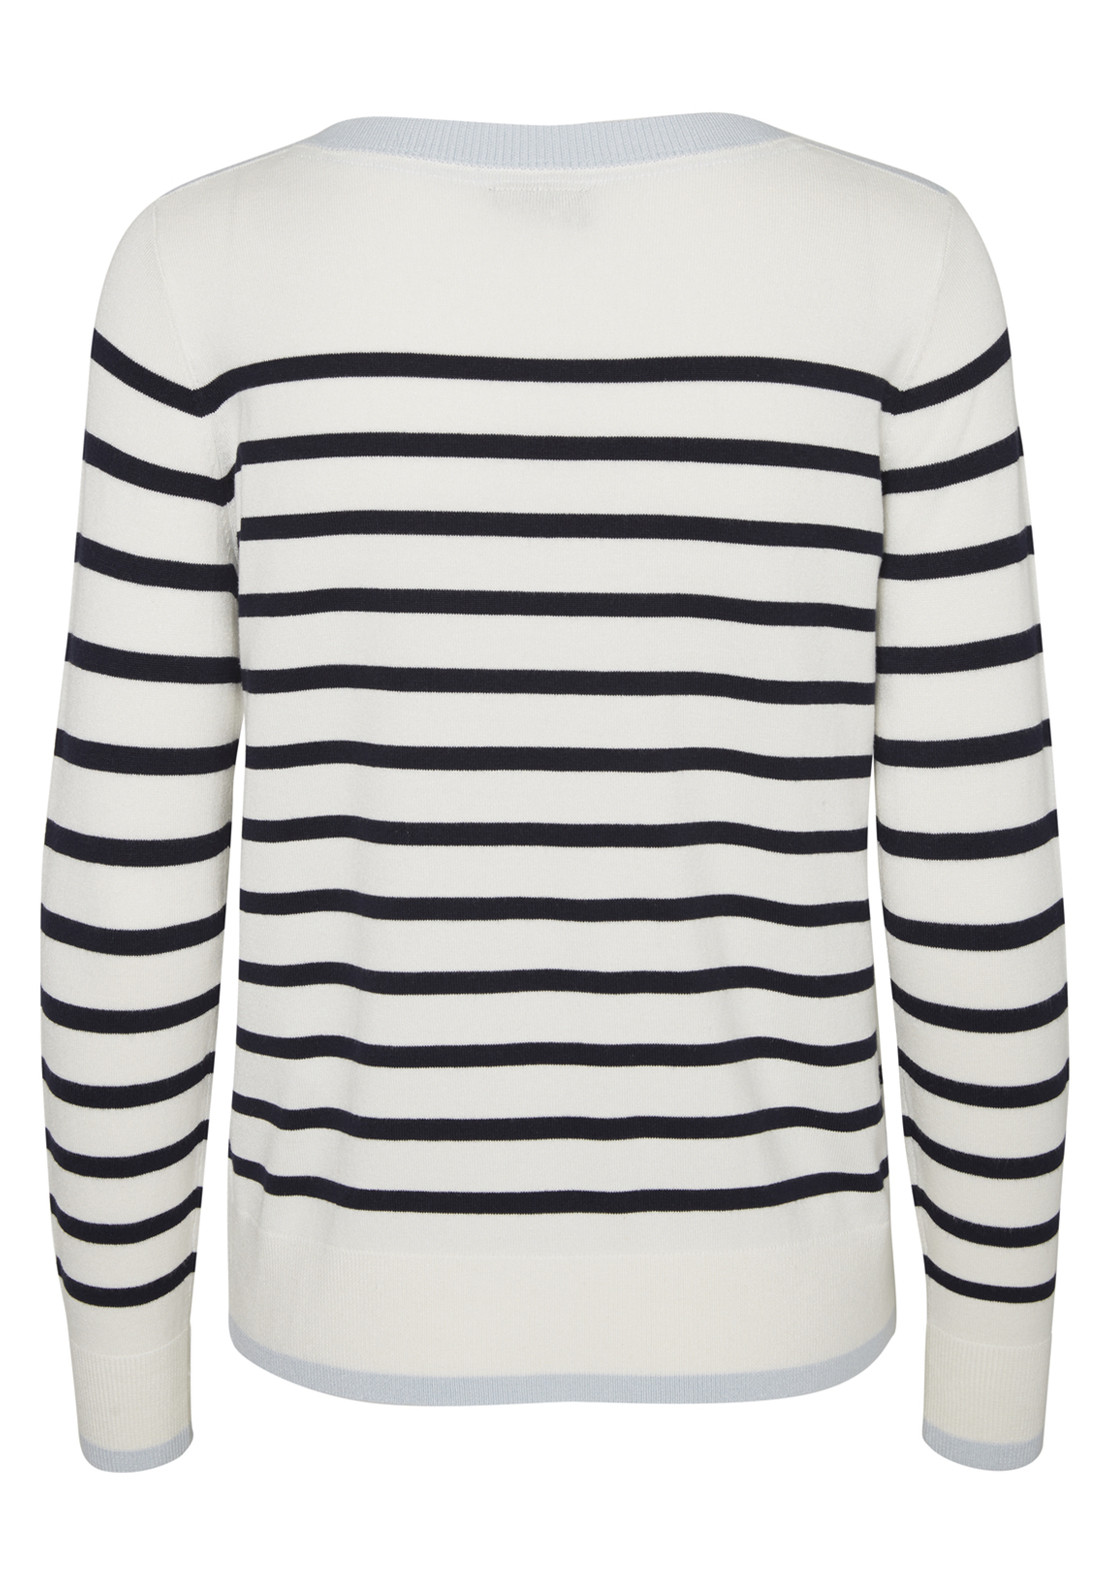 Navy Blue And White Striped Sweatshirt